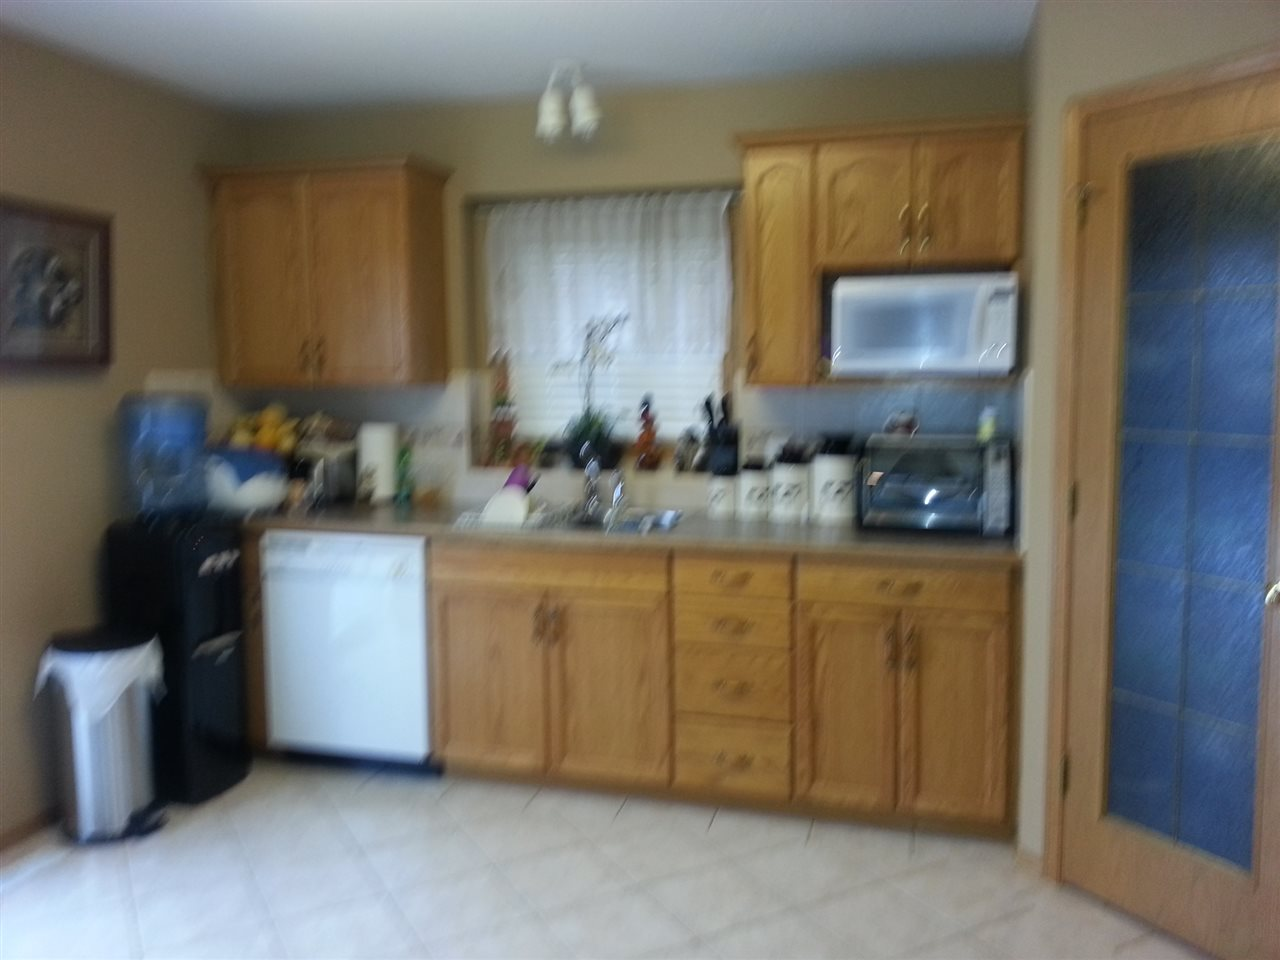 Other side of the kitchen, with pentry